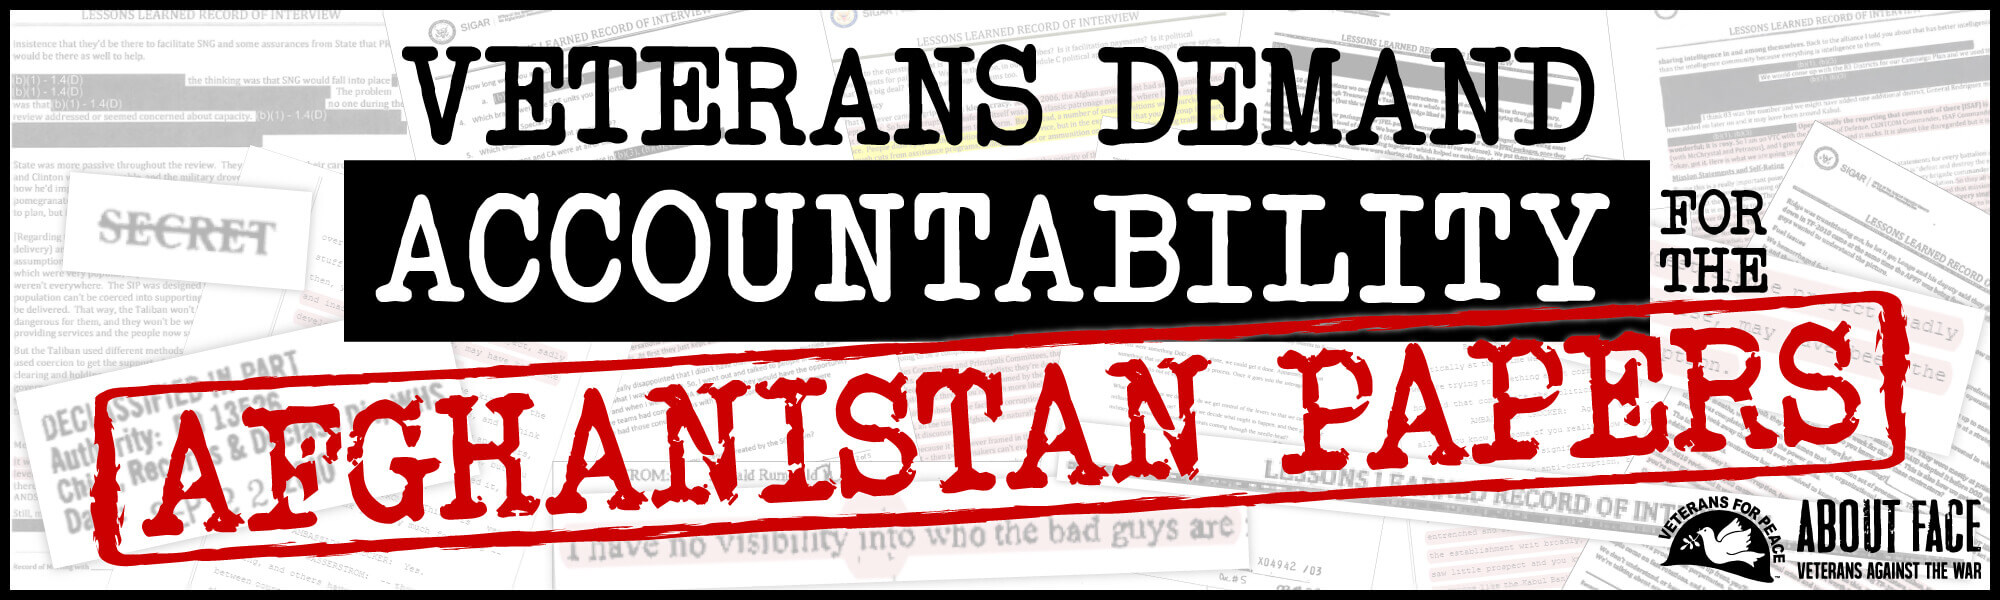 Veterans Demand Accountability for Revelations in Afghanistan Papers